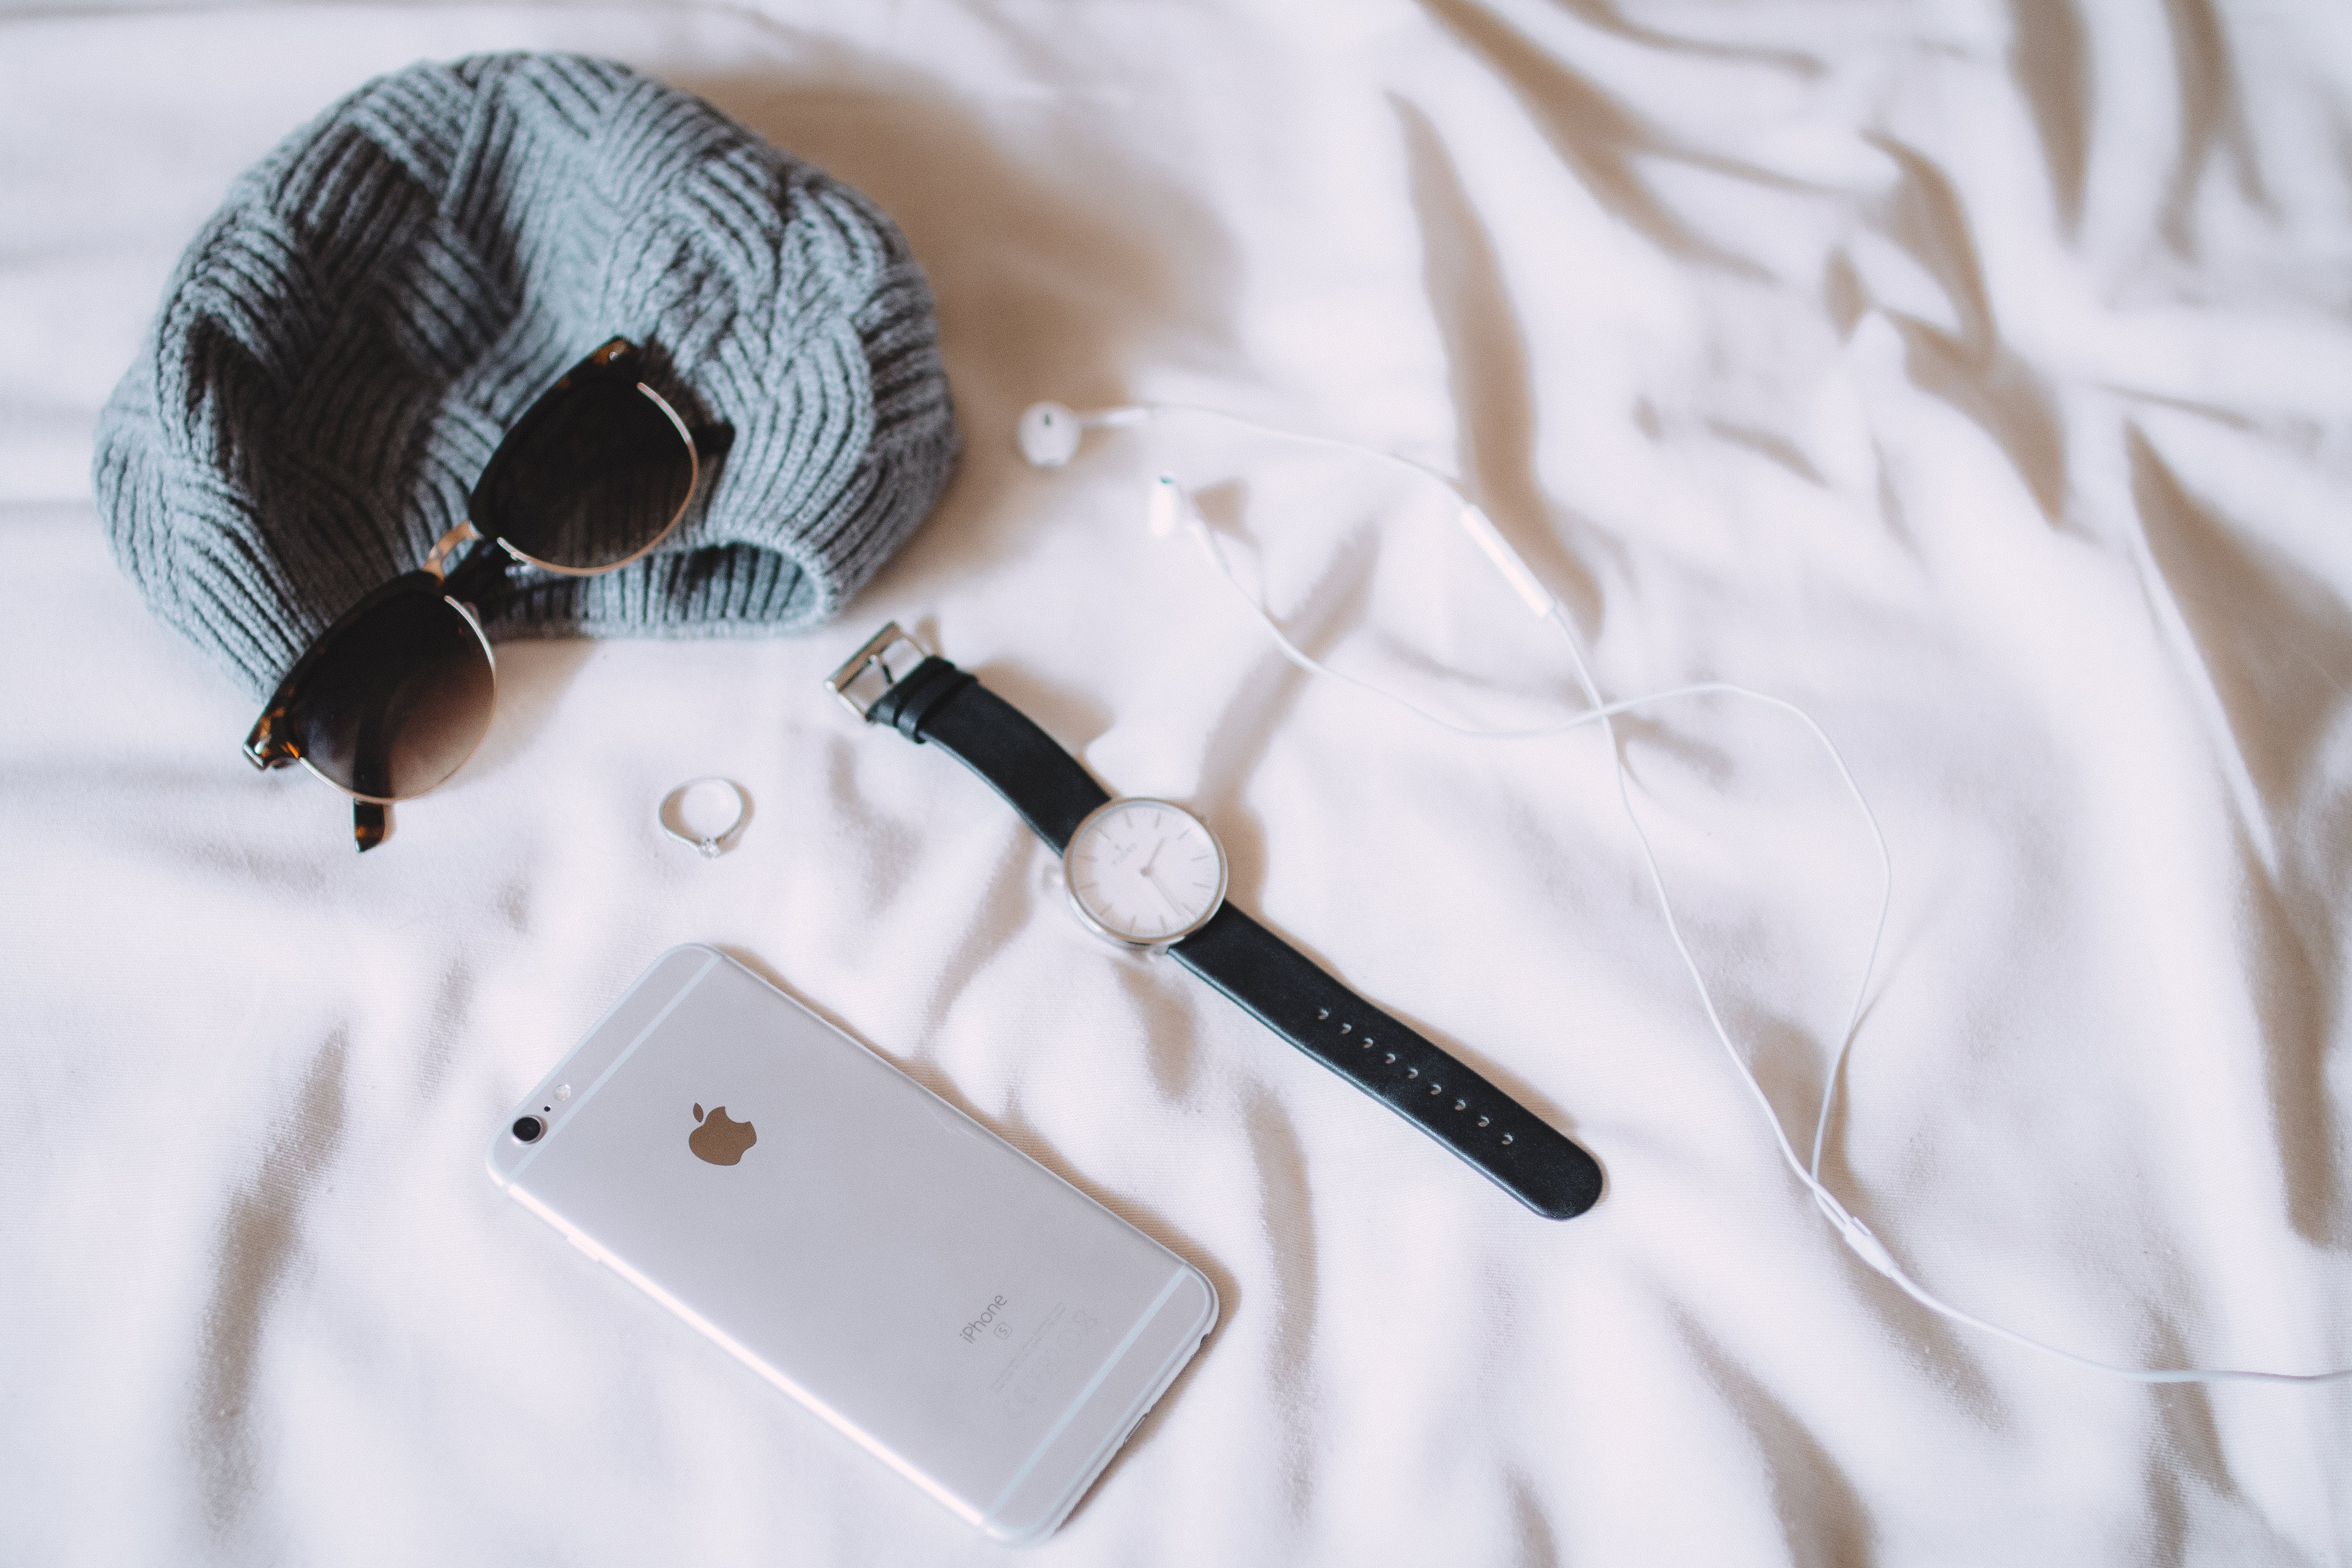 Silver Iphone 6 Beside Silver-colored Watch